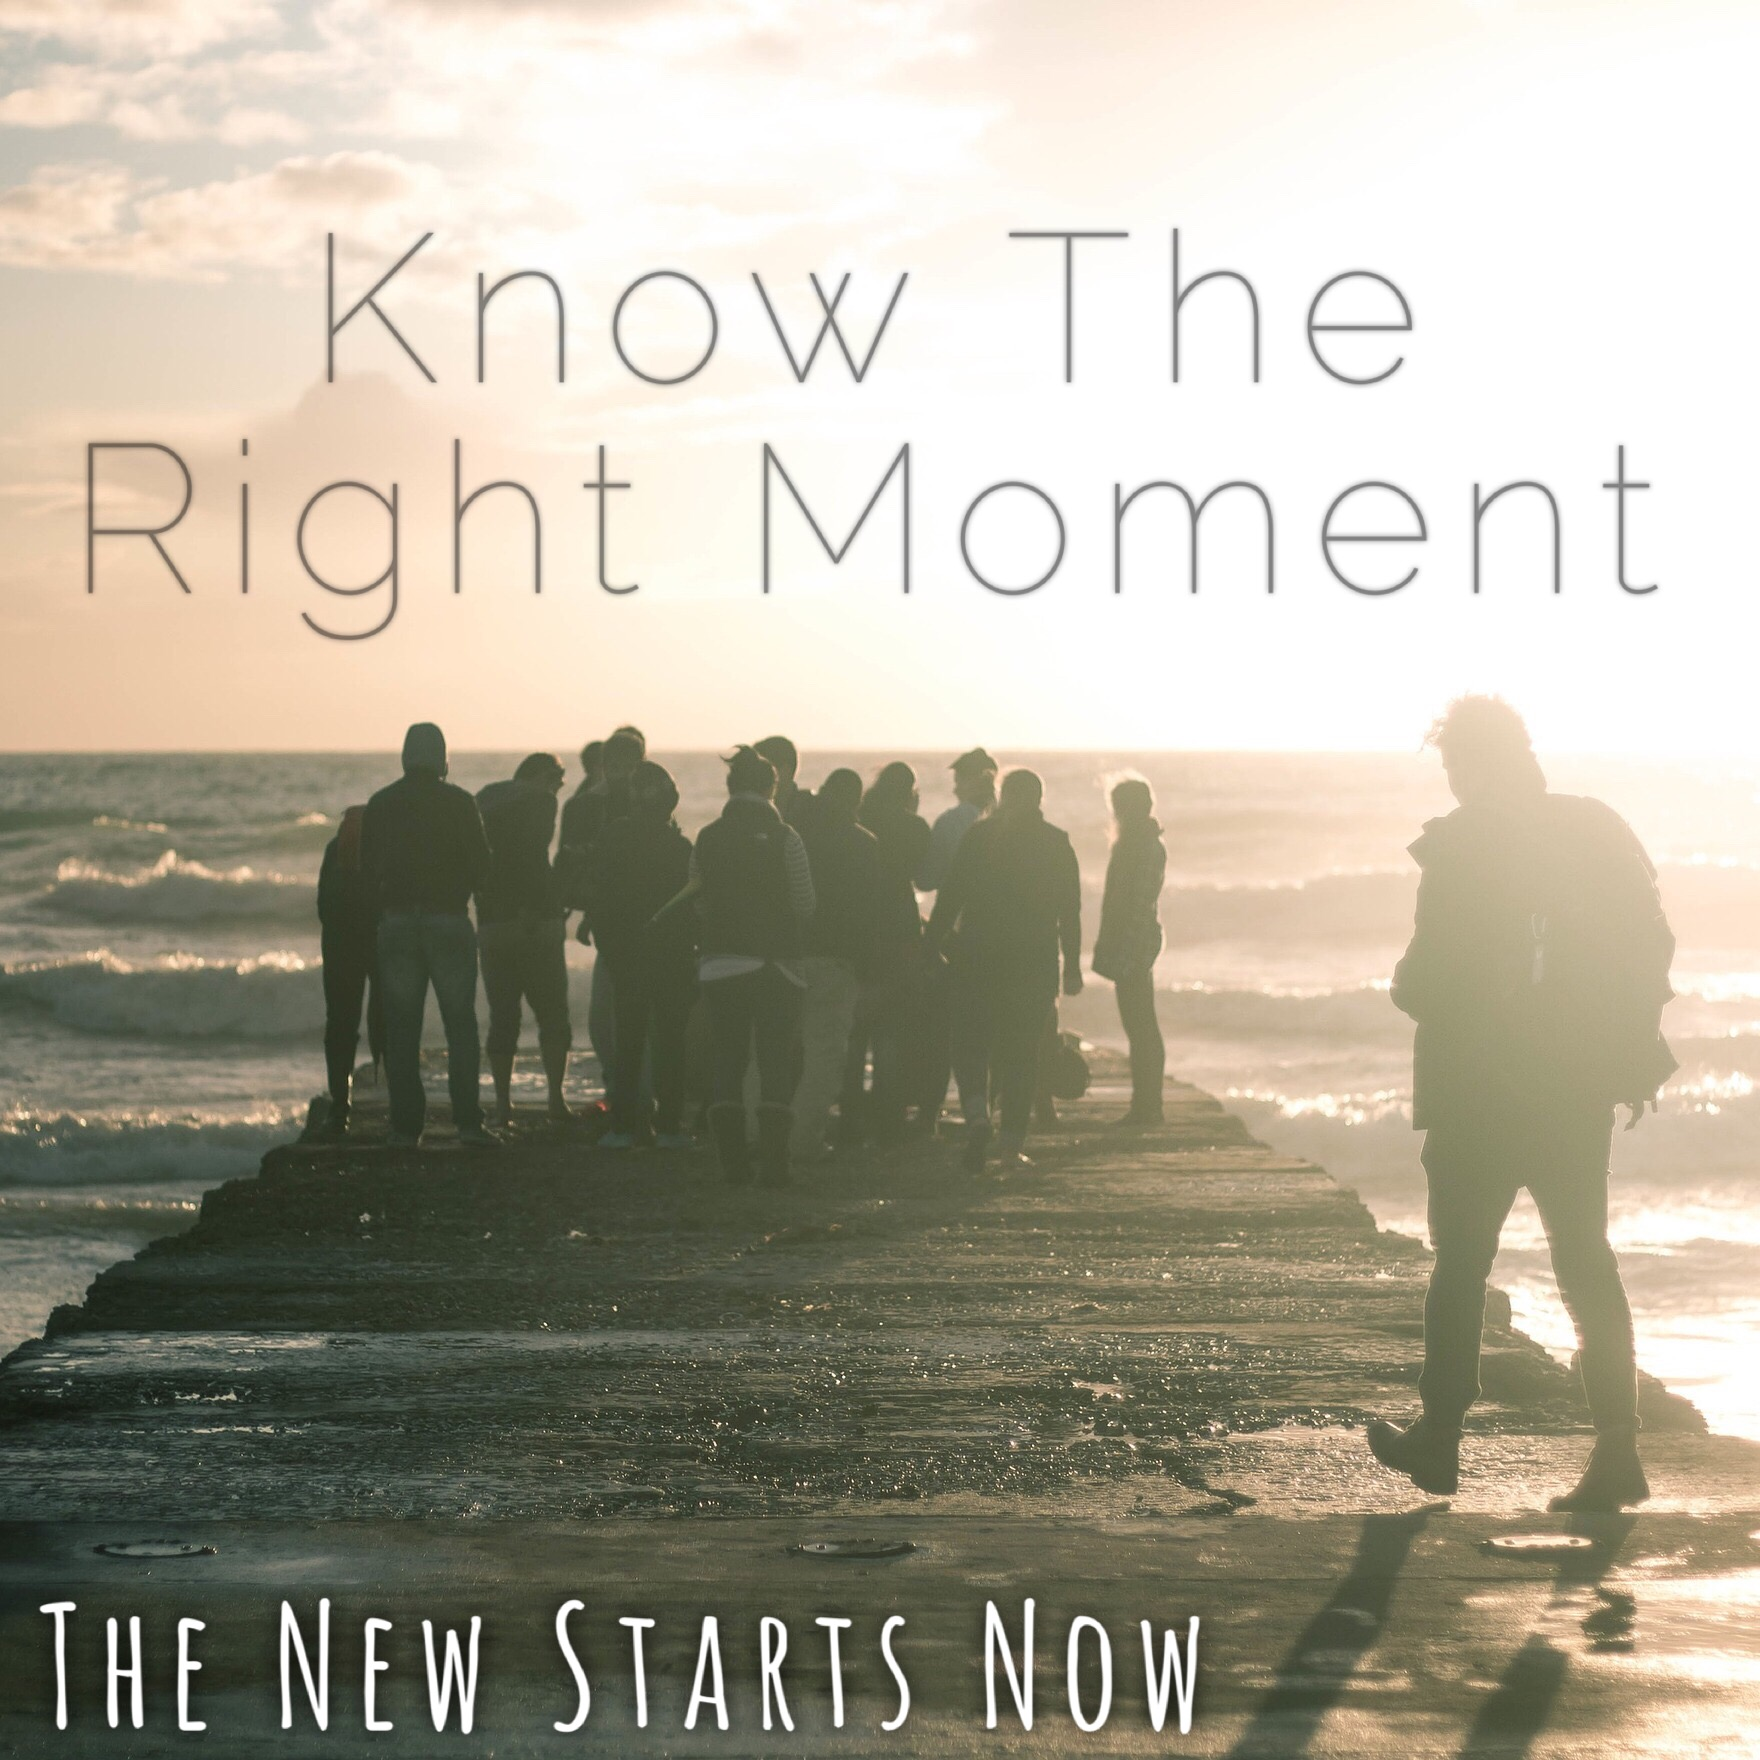 Know The Right Moment - Cover Art (Finished).jpeg